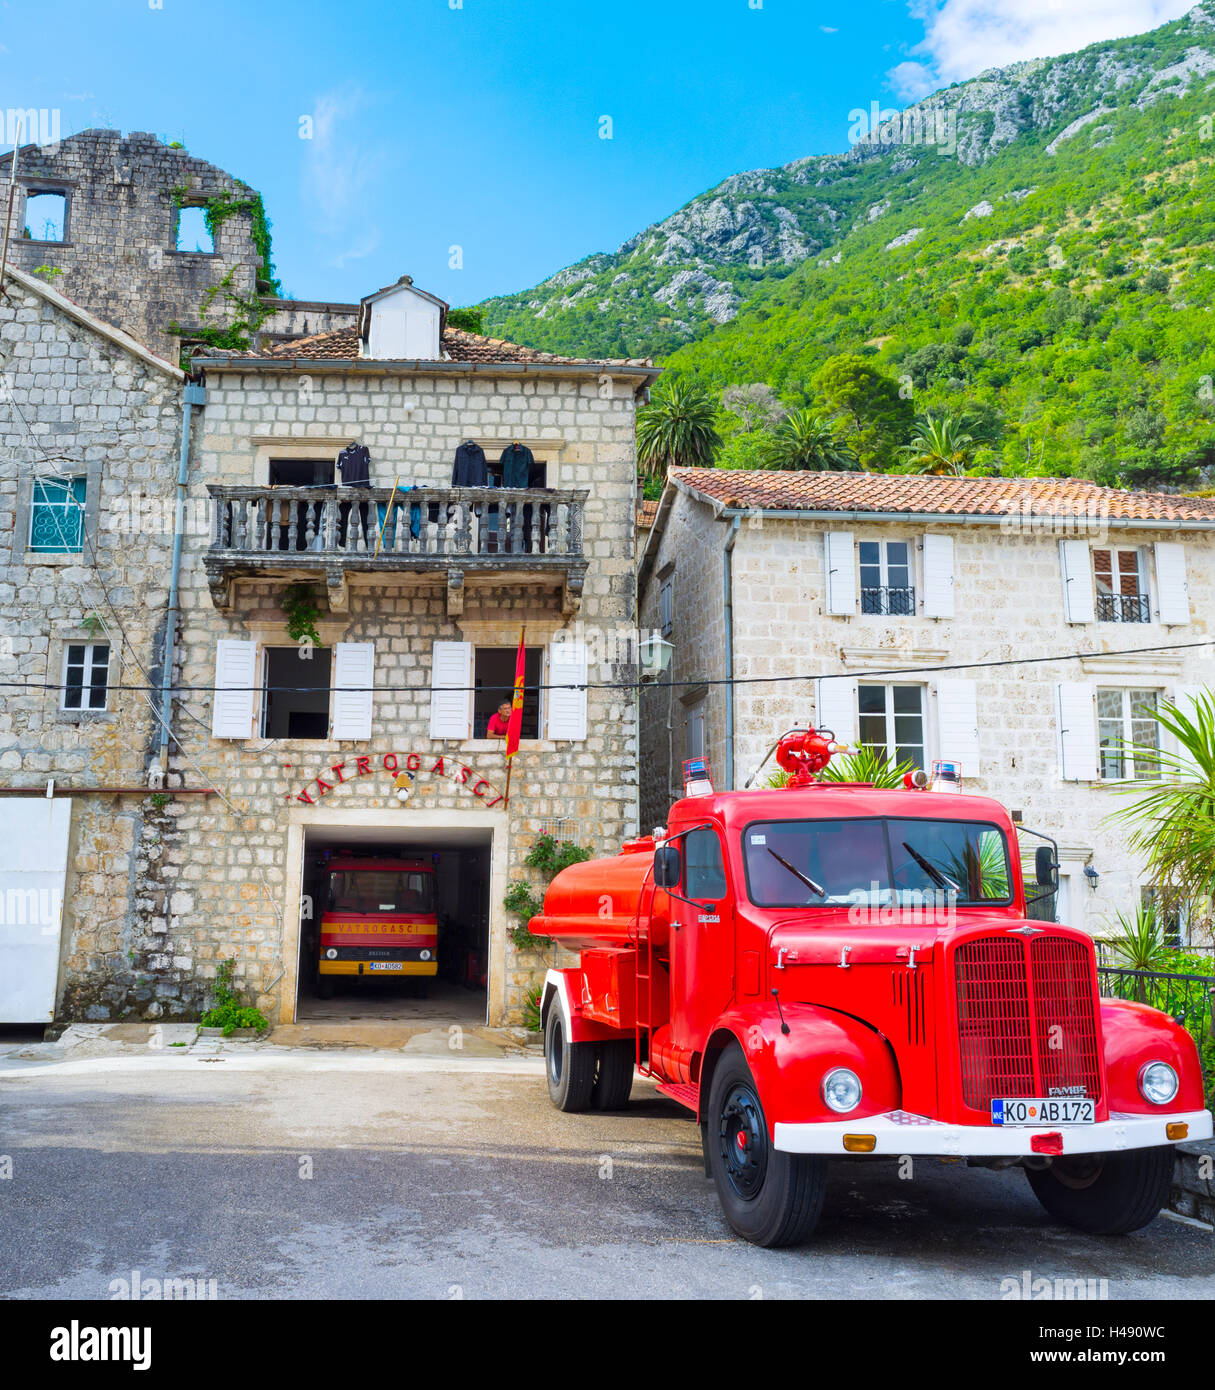 The fire station, located in the old house on the city promenade, with the red fire truck next to it, Perast Stock Photo